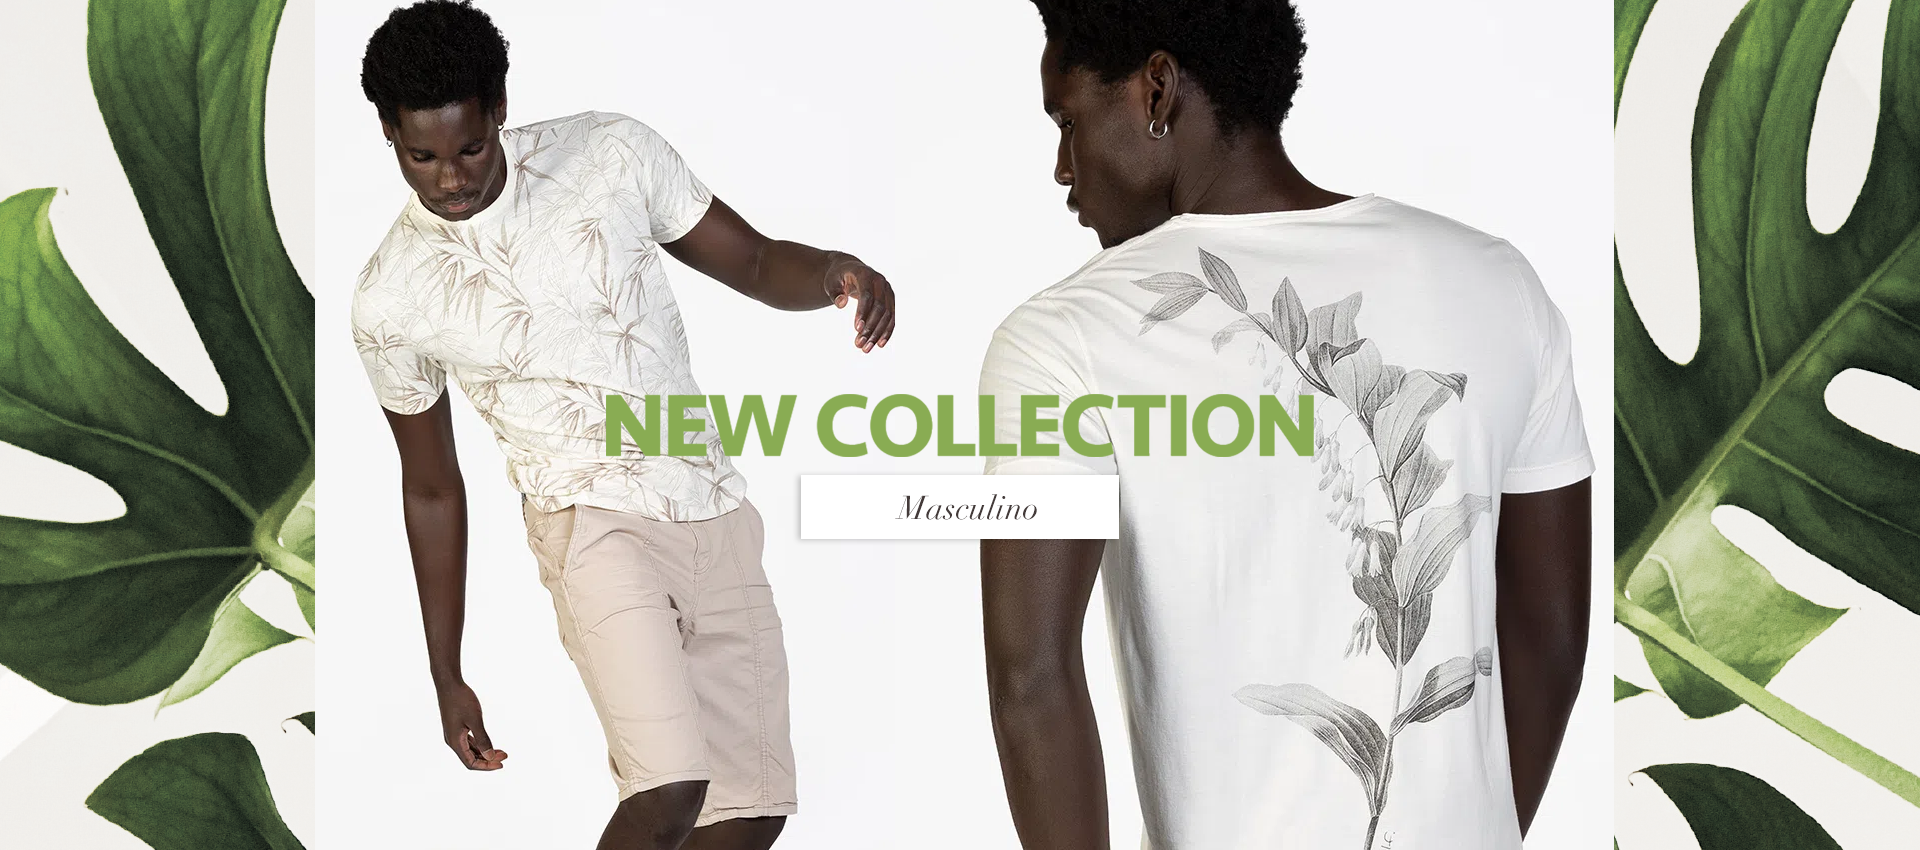 New Collection - MASCULINO